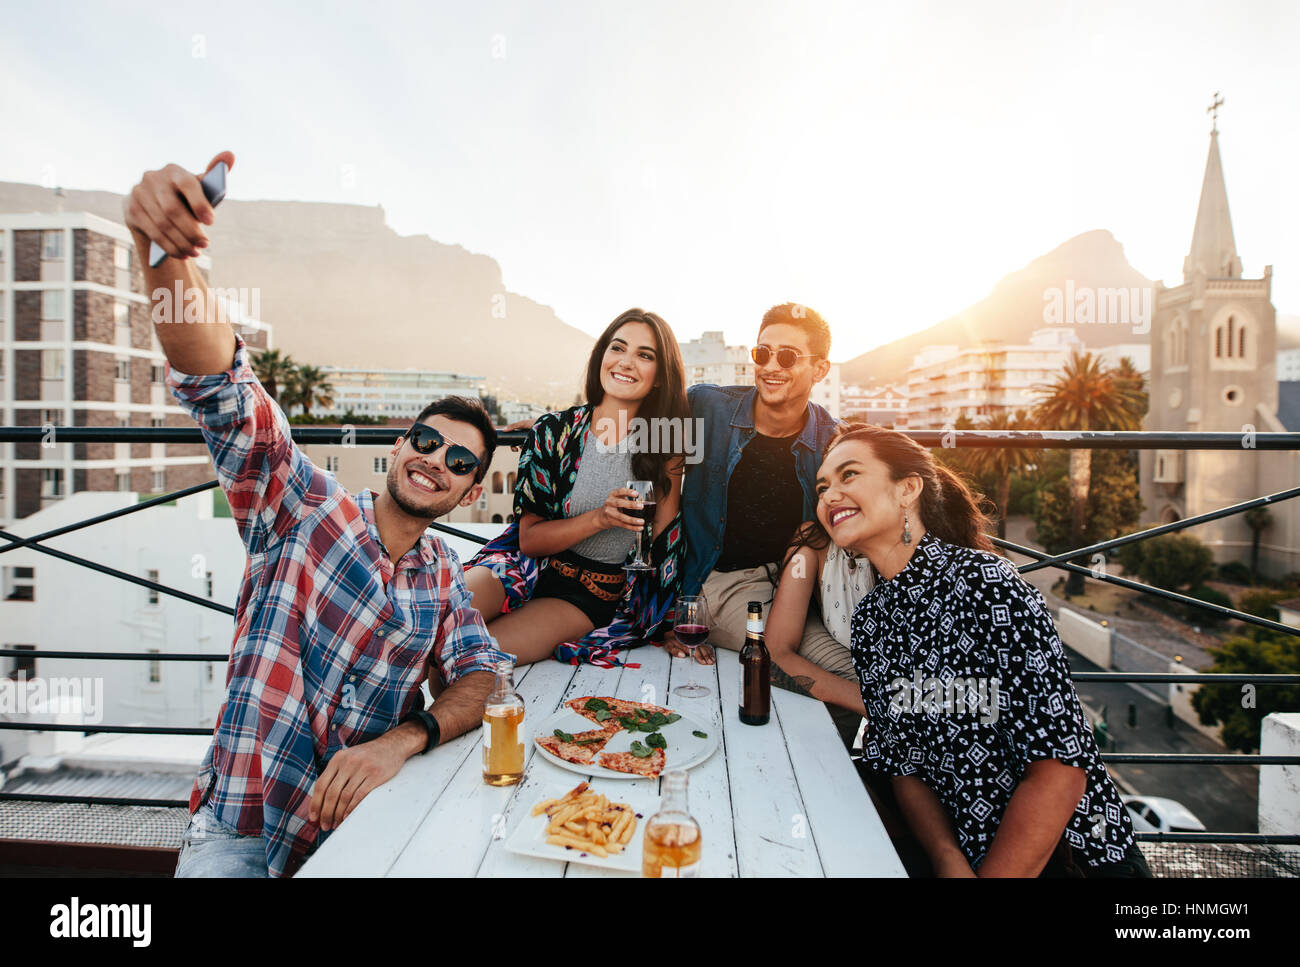 Group of friends having a party on the rooftop making a selfie. Happy young people taking self portrait during party. - Stock Image